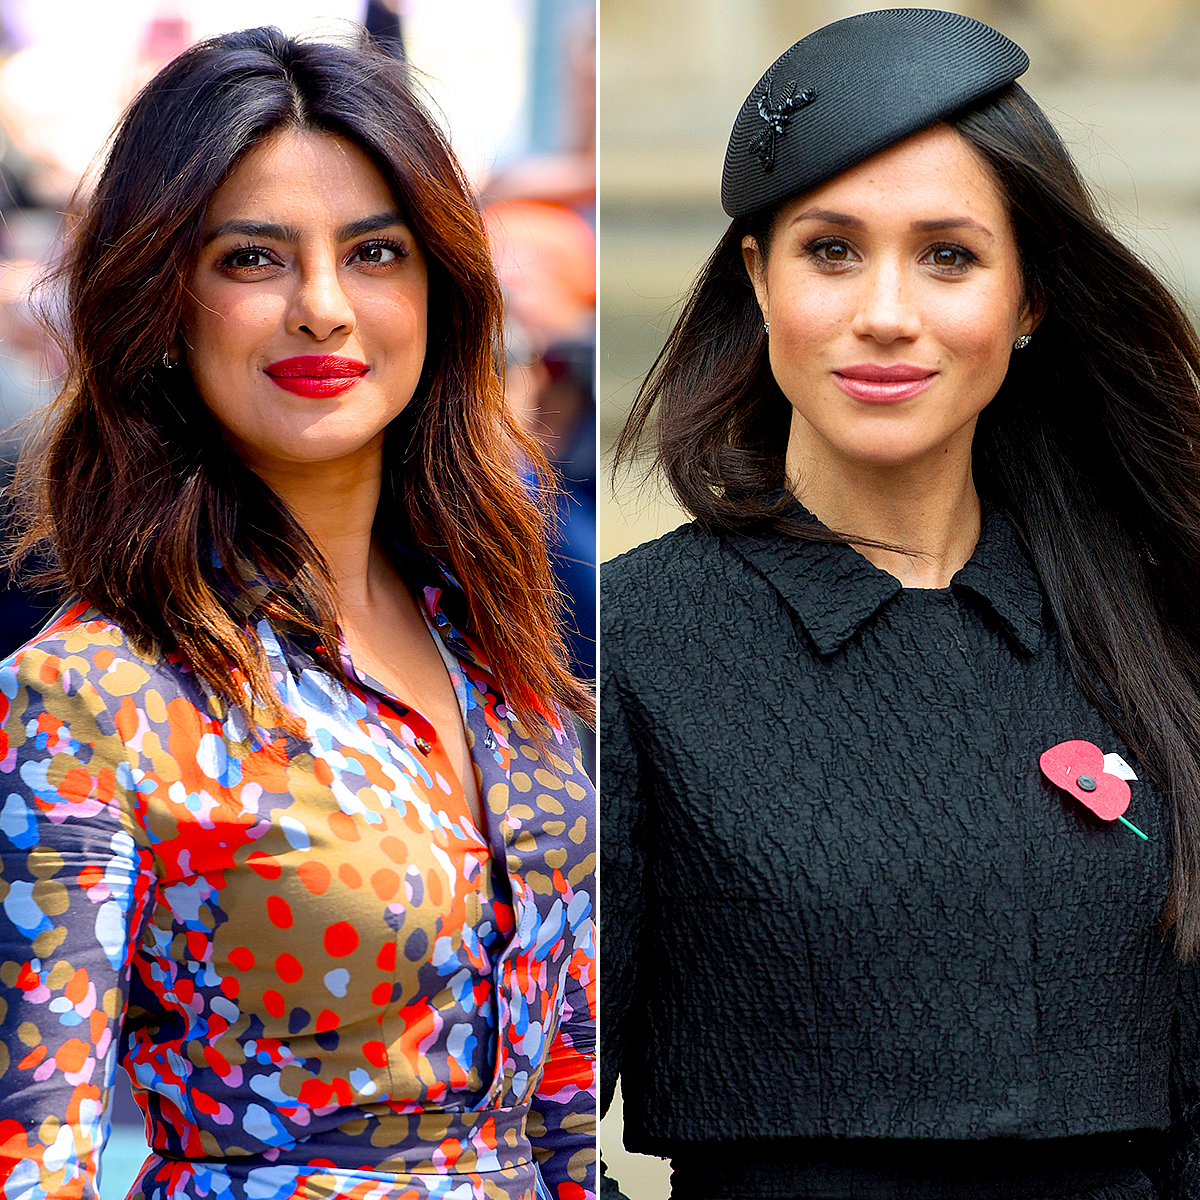 foto Priyanka Chopra Opens Up About Friend Meghan Markles Relationship With Prince Harry